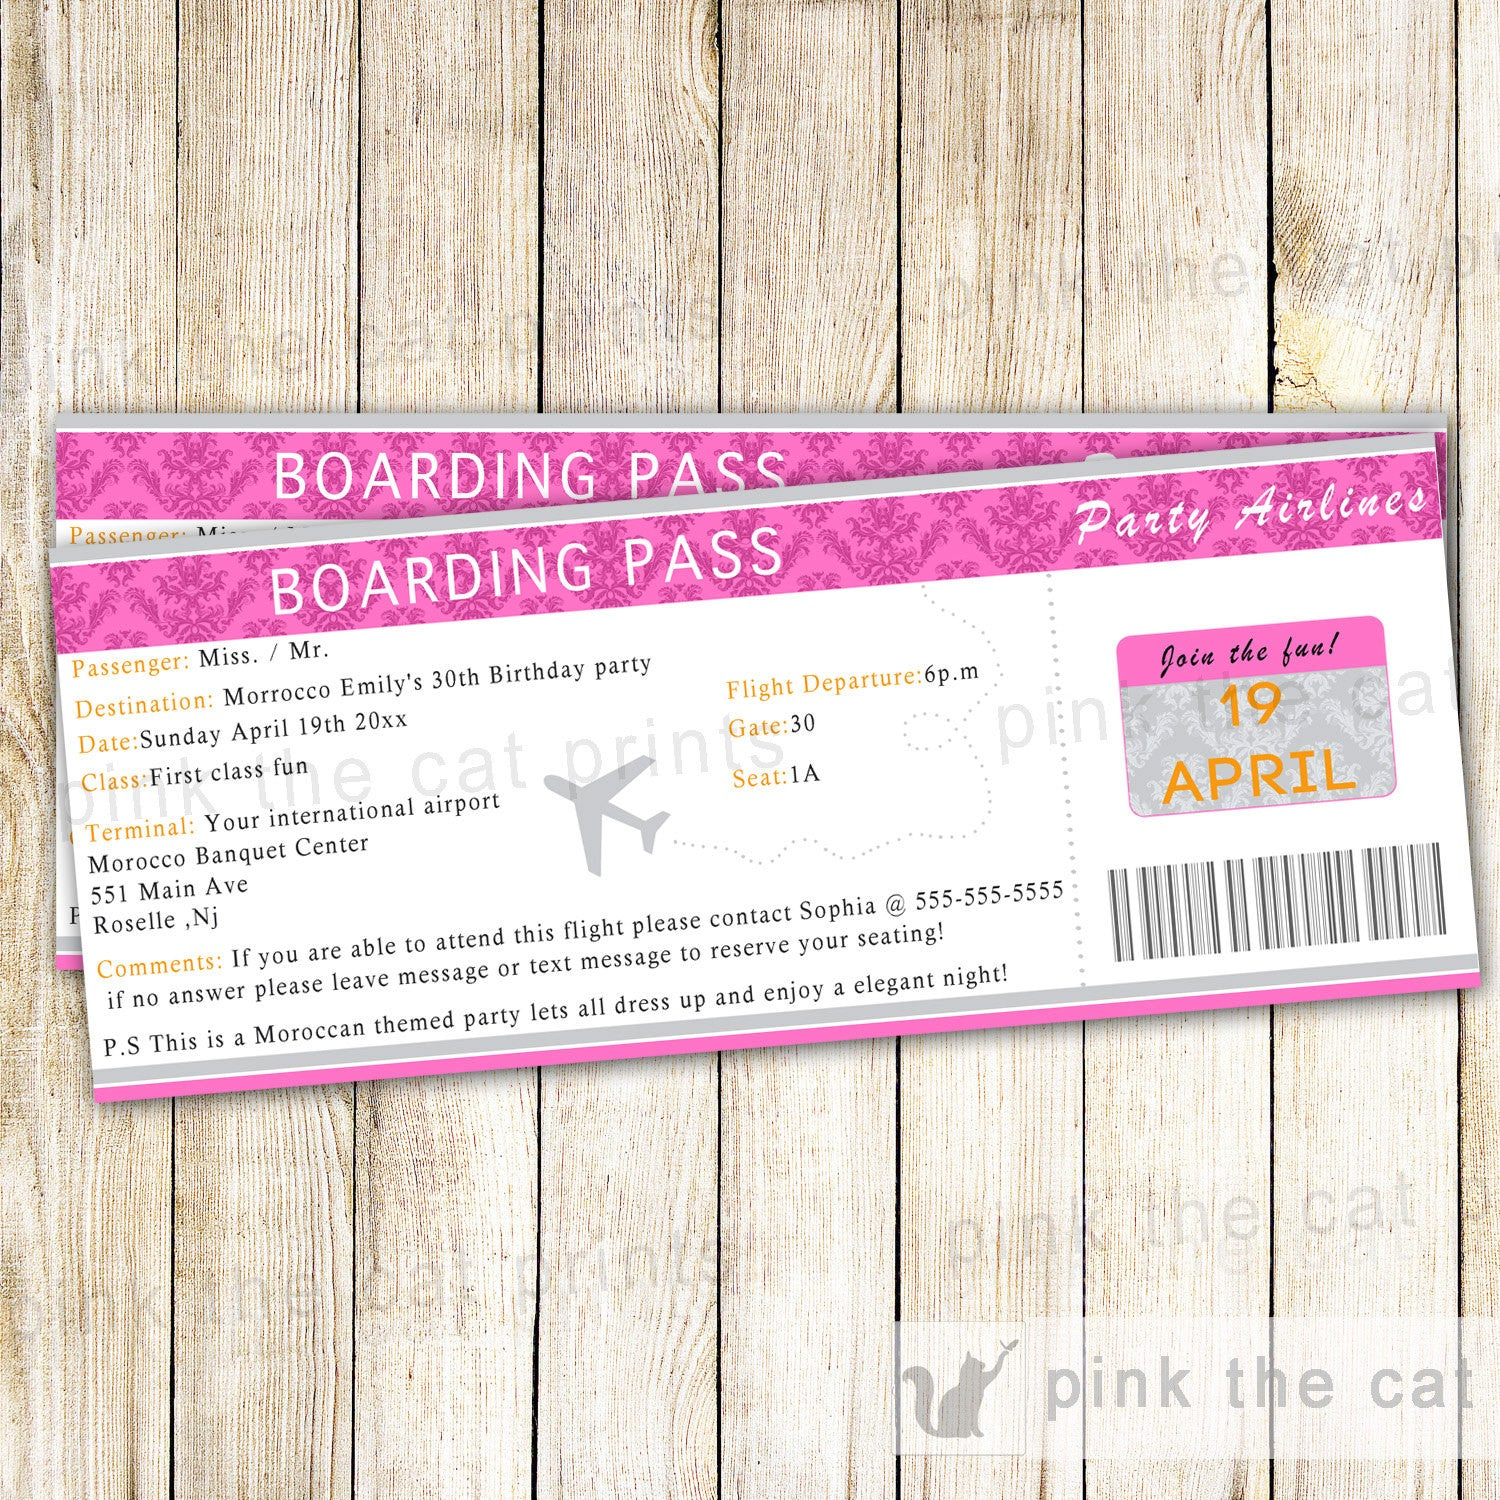 Boarding Pass Invitation Adult Birthday Party – Pink The Cat